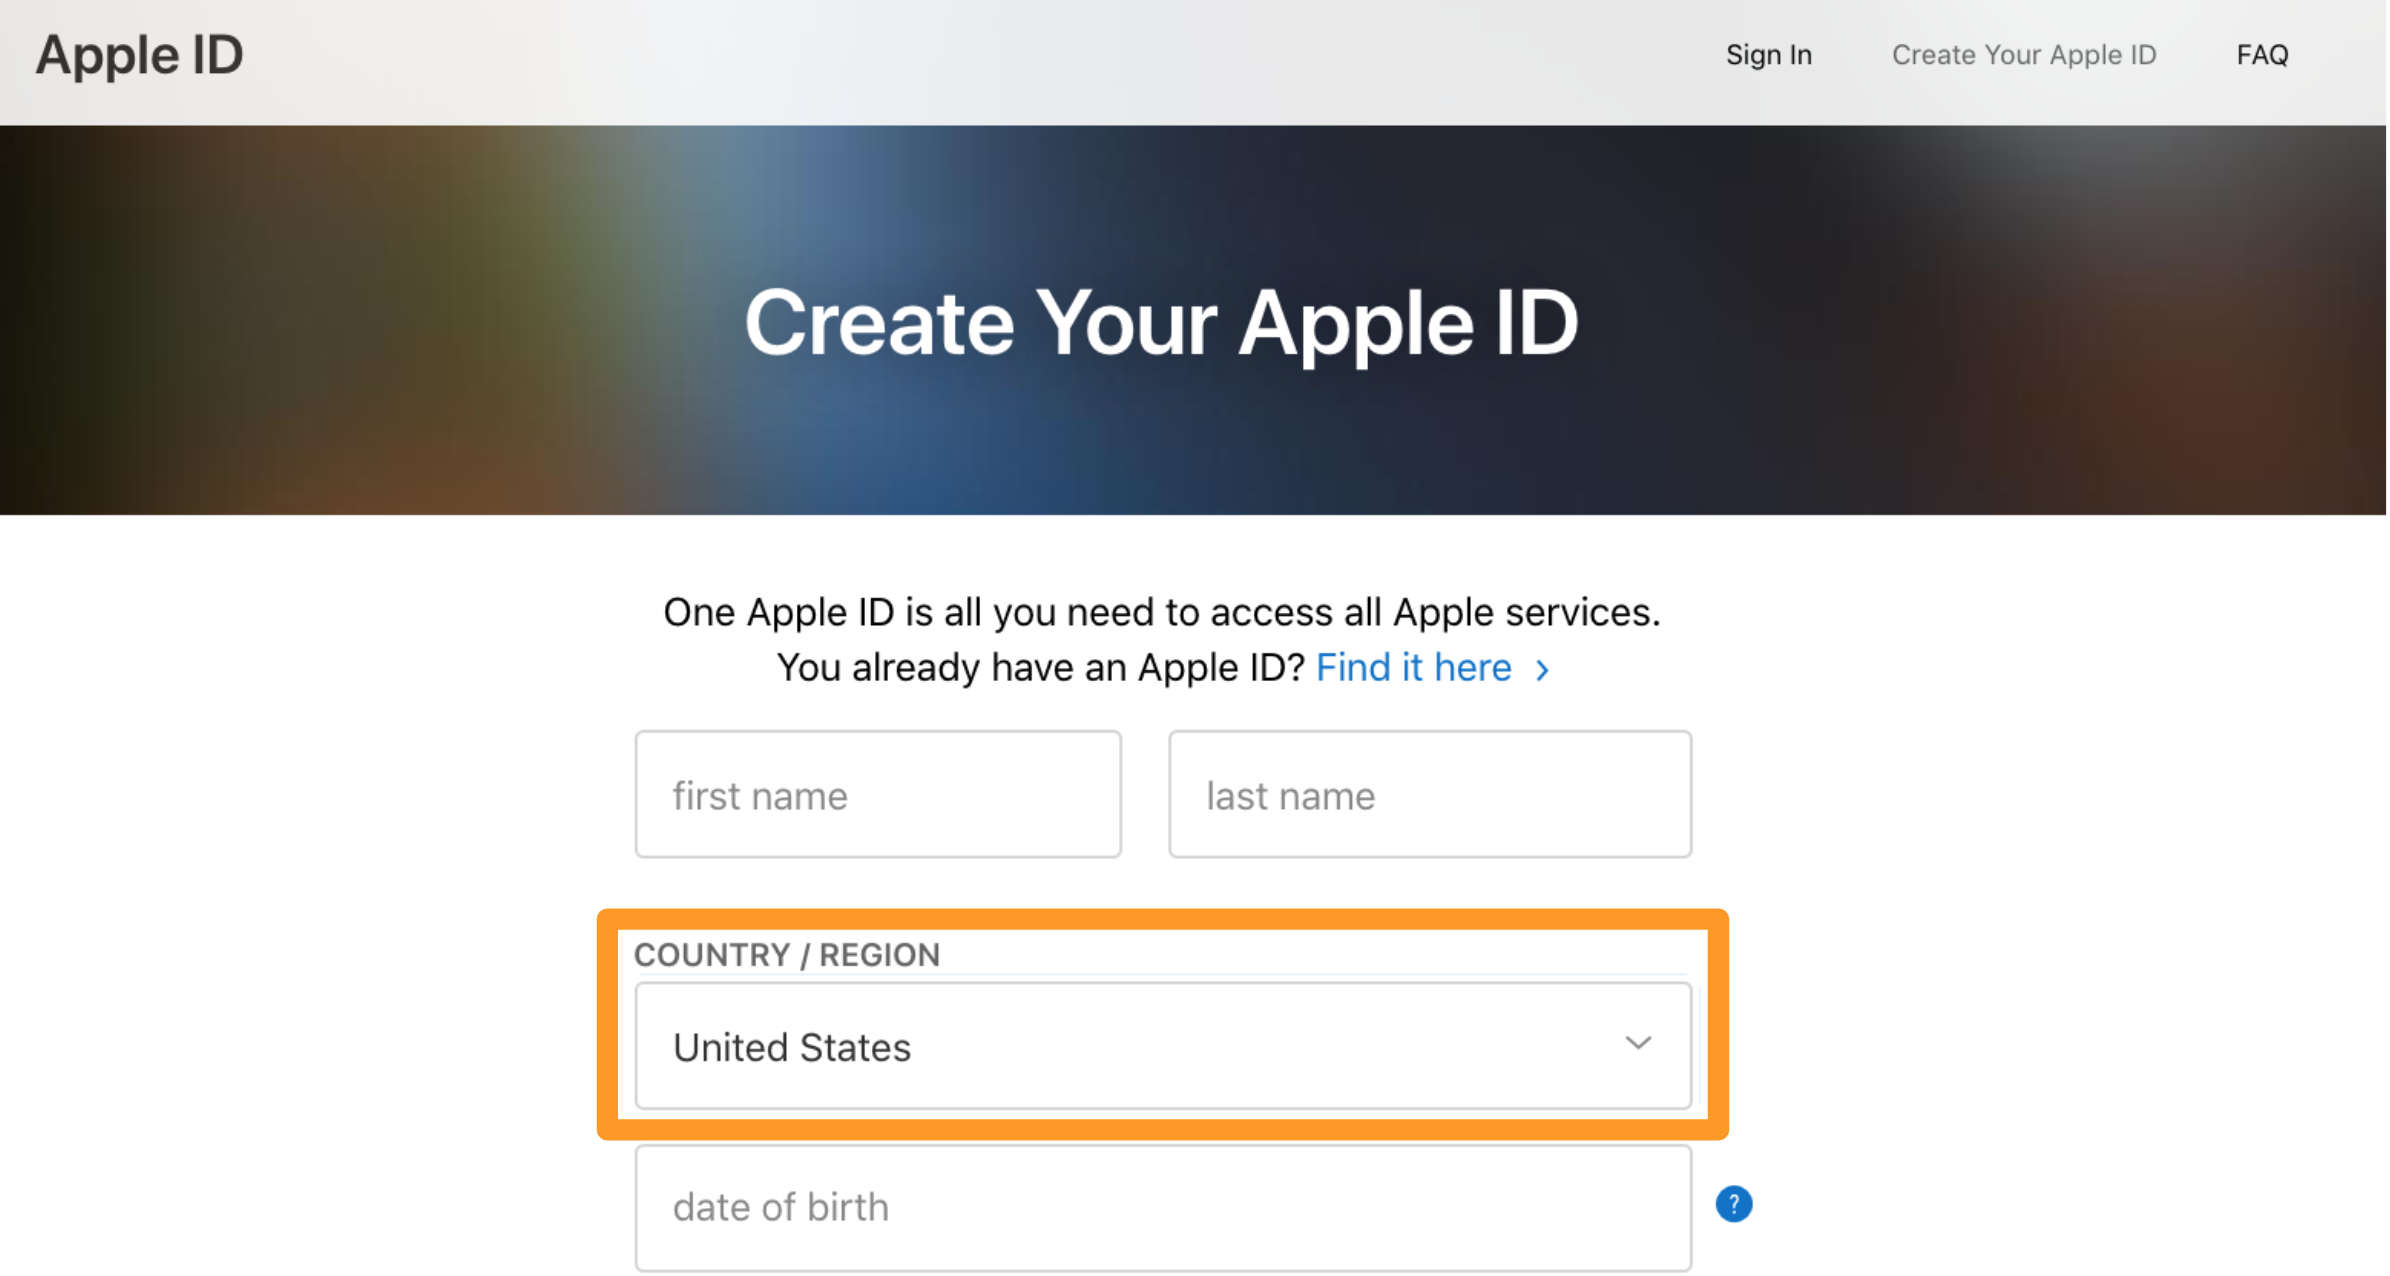 Screenshot of process to create and Apple ID in the App Store.